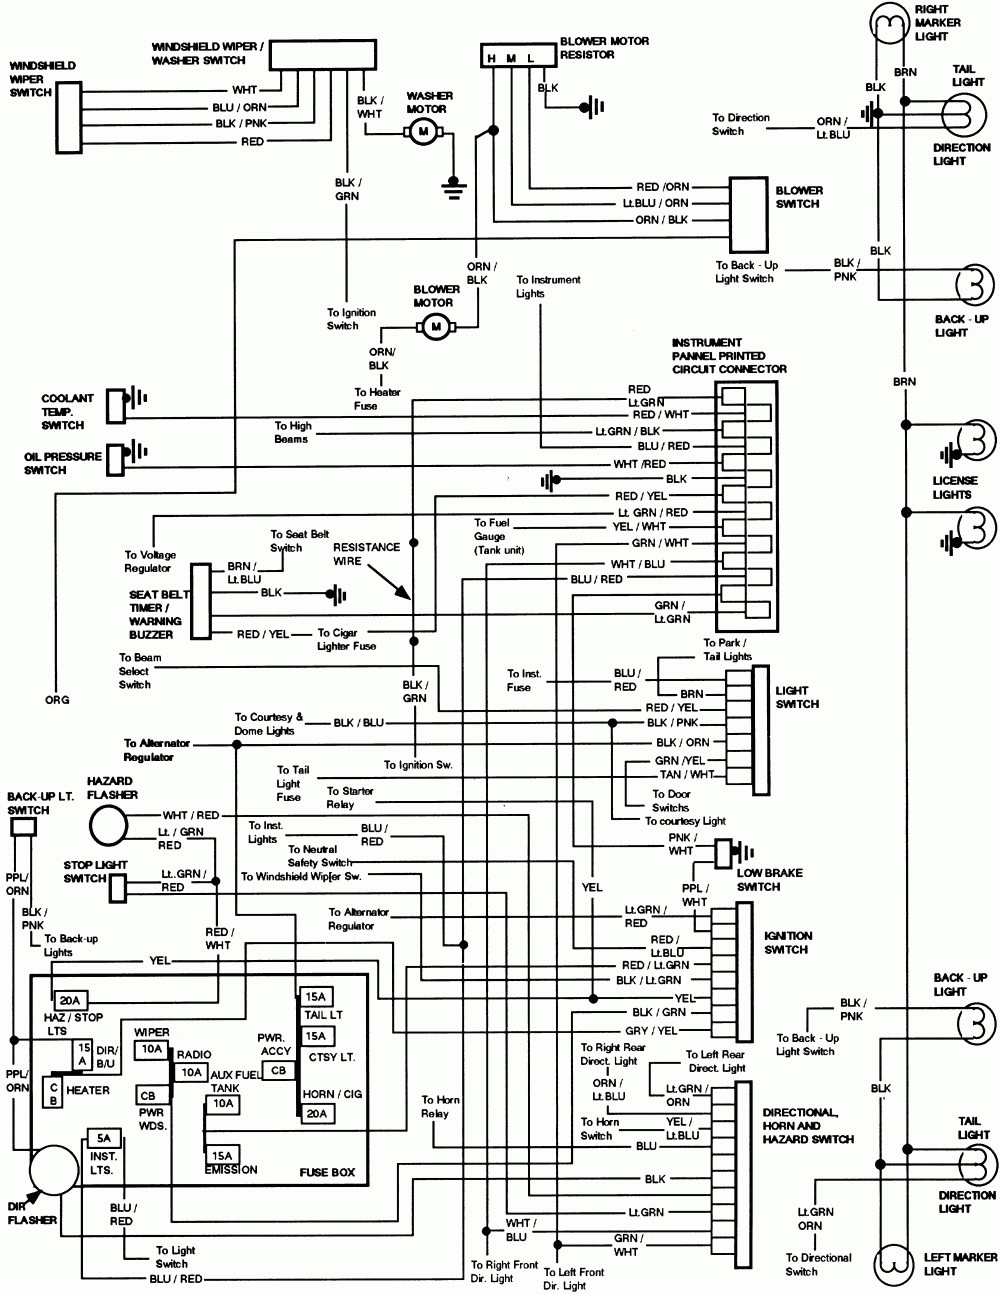 1989 ford f 150 steering column diagram | online wiring ... 2 reverse light wiring diagram 1988 ford bronco stering colunm wiring diagram 1989 ford bronco #3